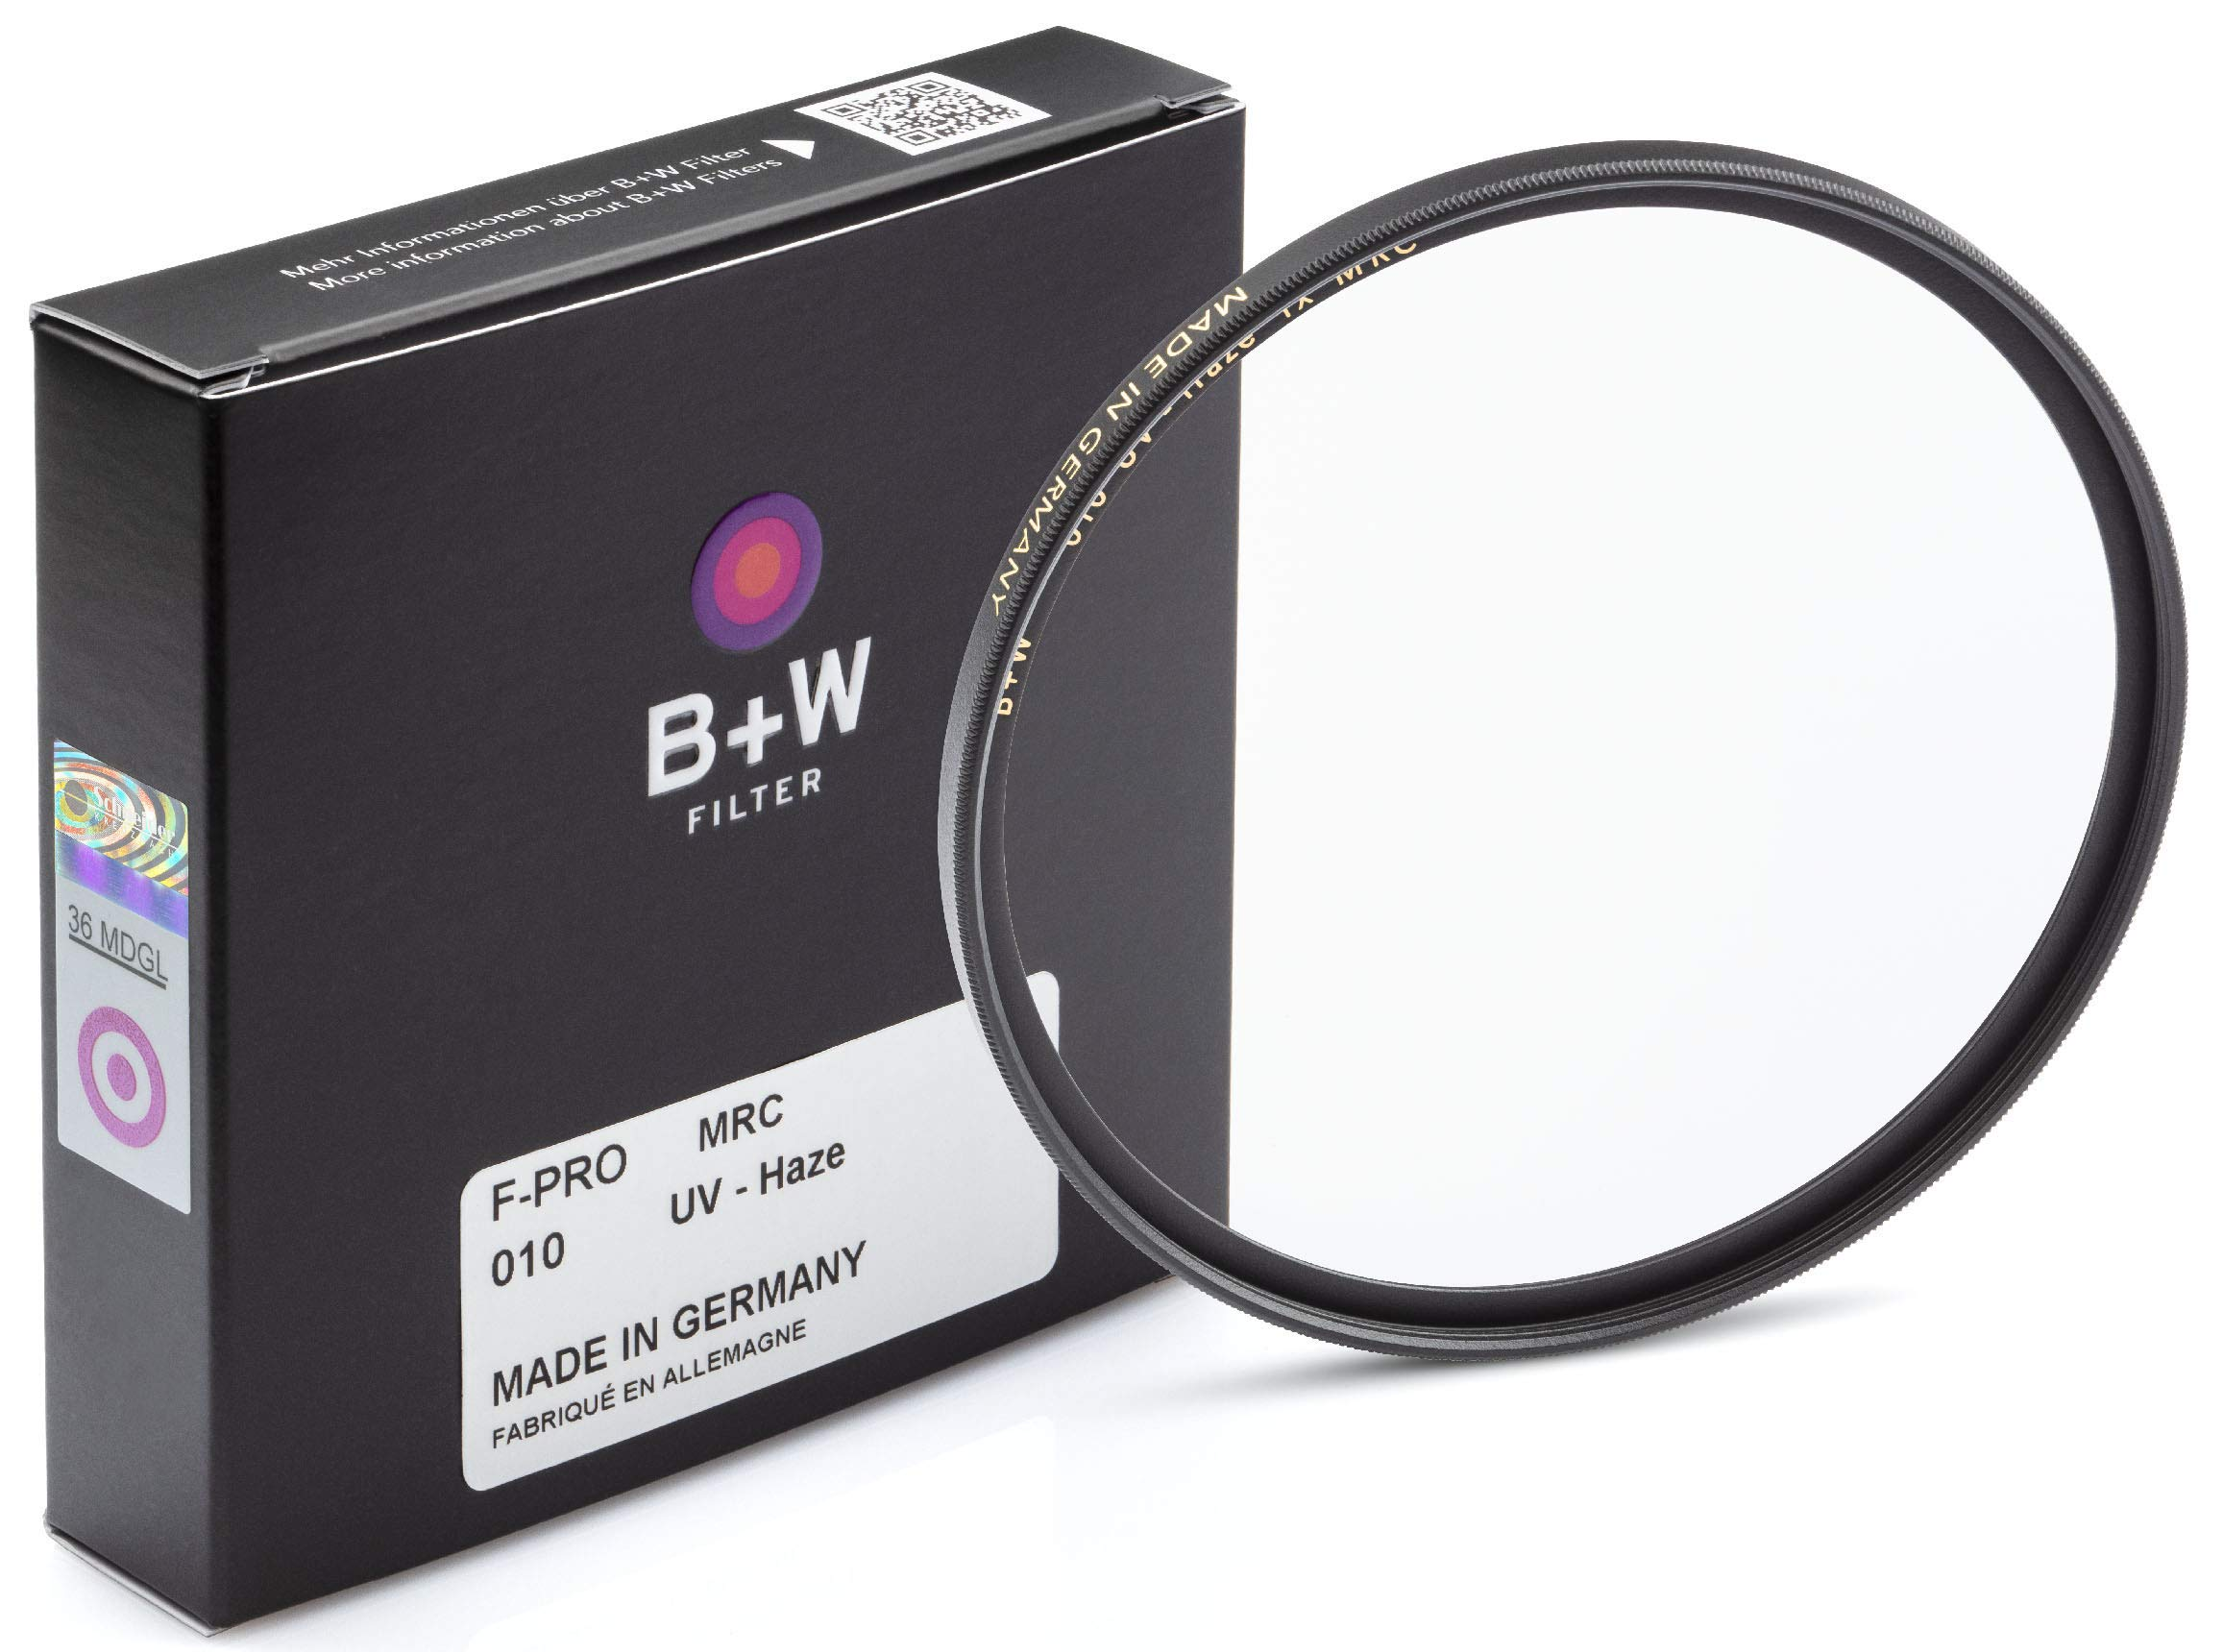 B + W 82mm UV Protection Filter (010) for Camera Lens – Standard Mount (F-PRO), MRC, 16 Layers Multi-Resistant Coating, Photography Filter, 82 mm, Clear Protector